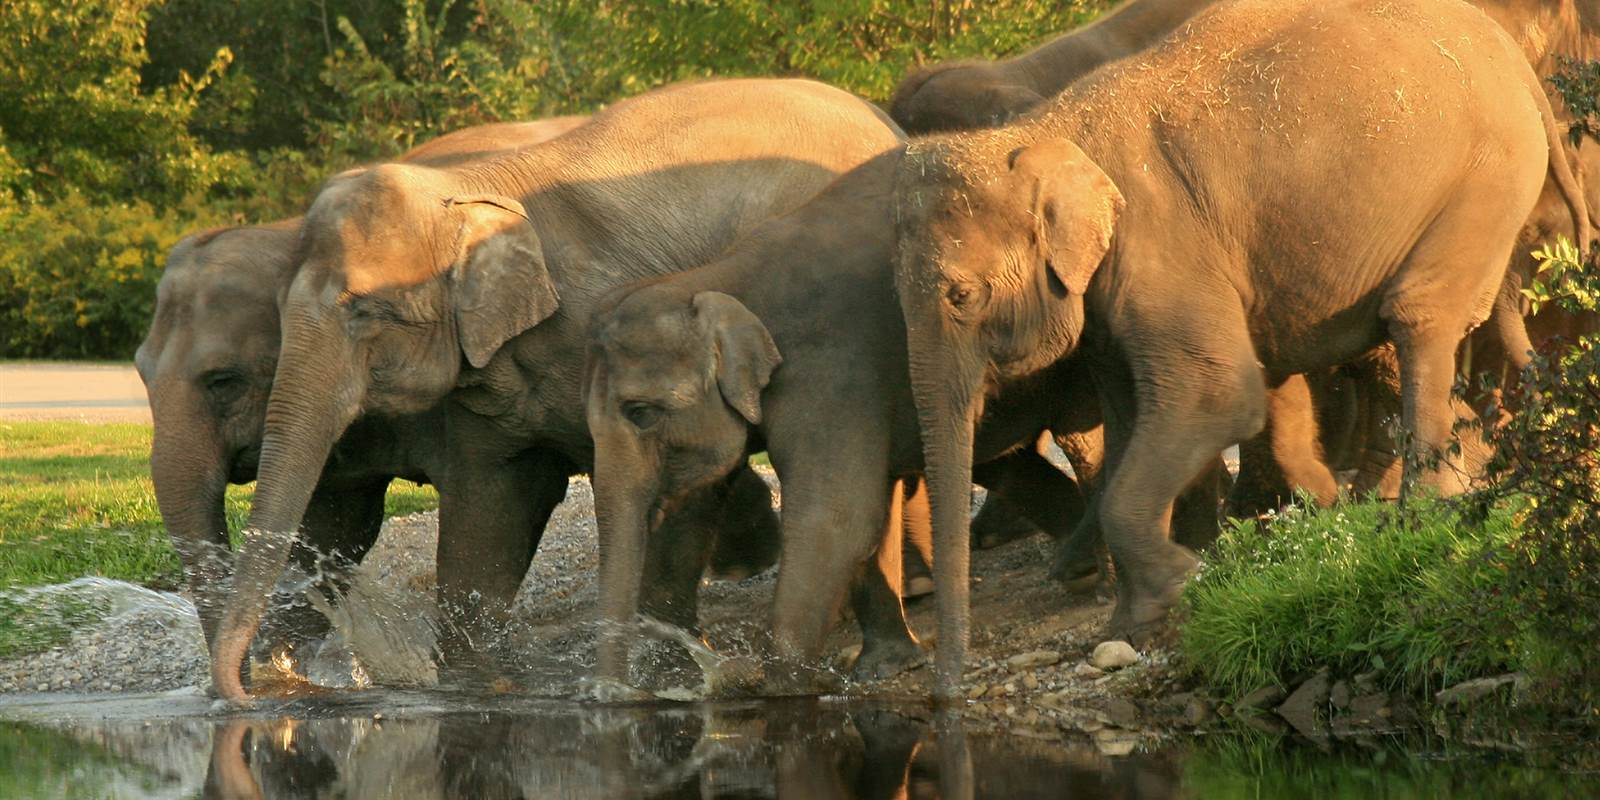 Elephants at Rajaji National Park